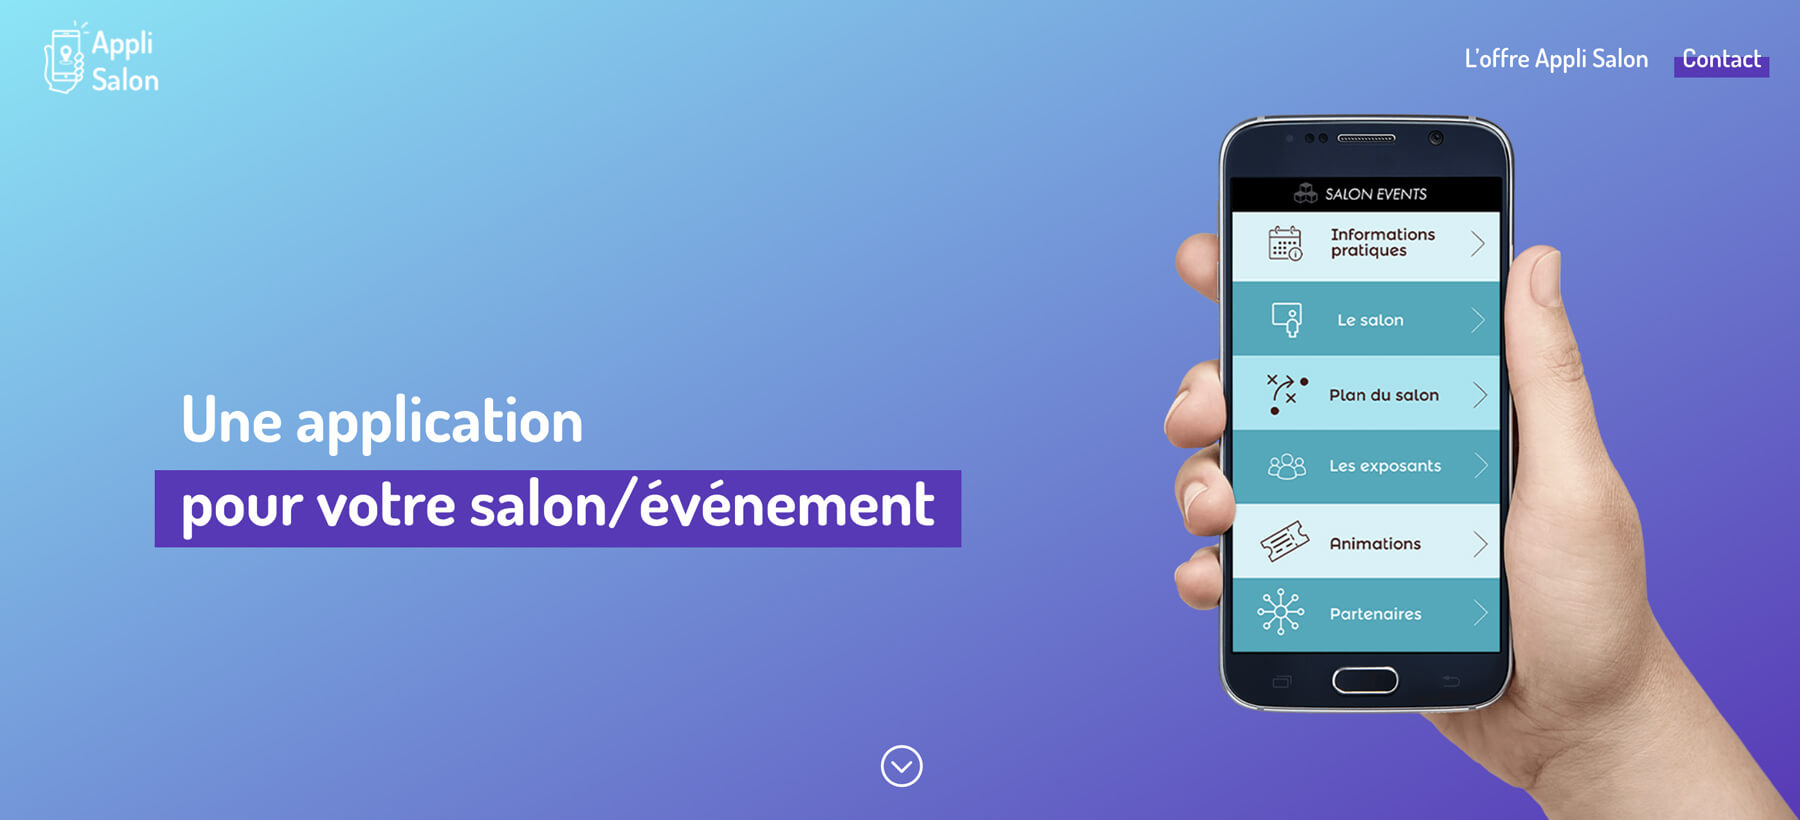 application_smartphone_salon